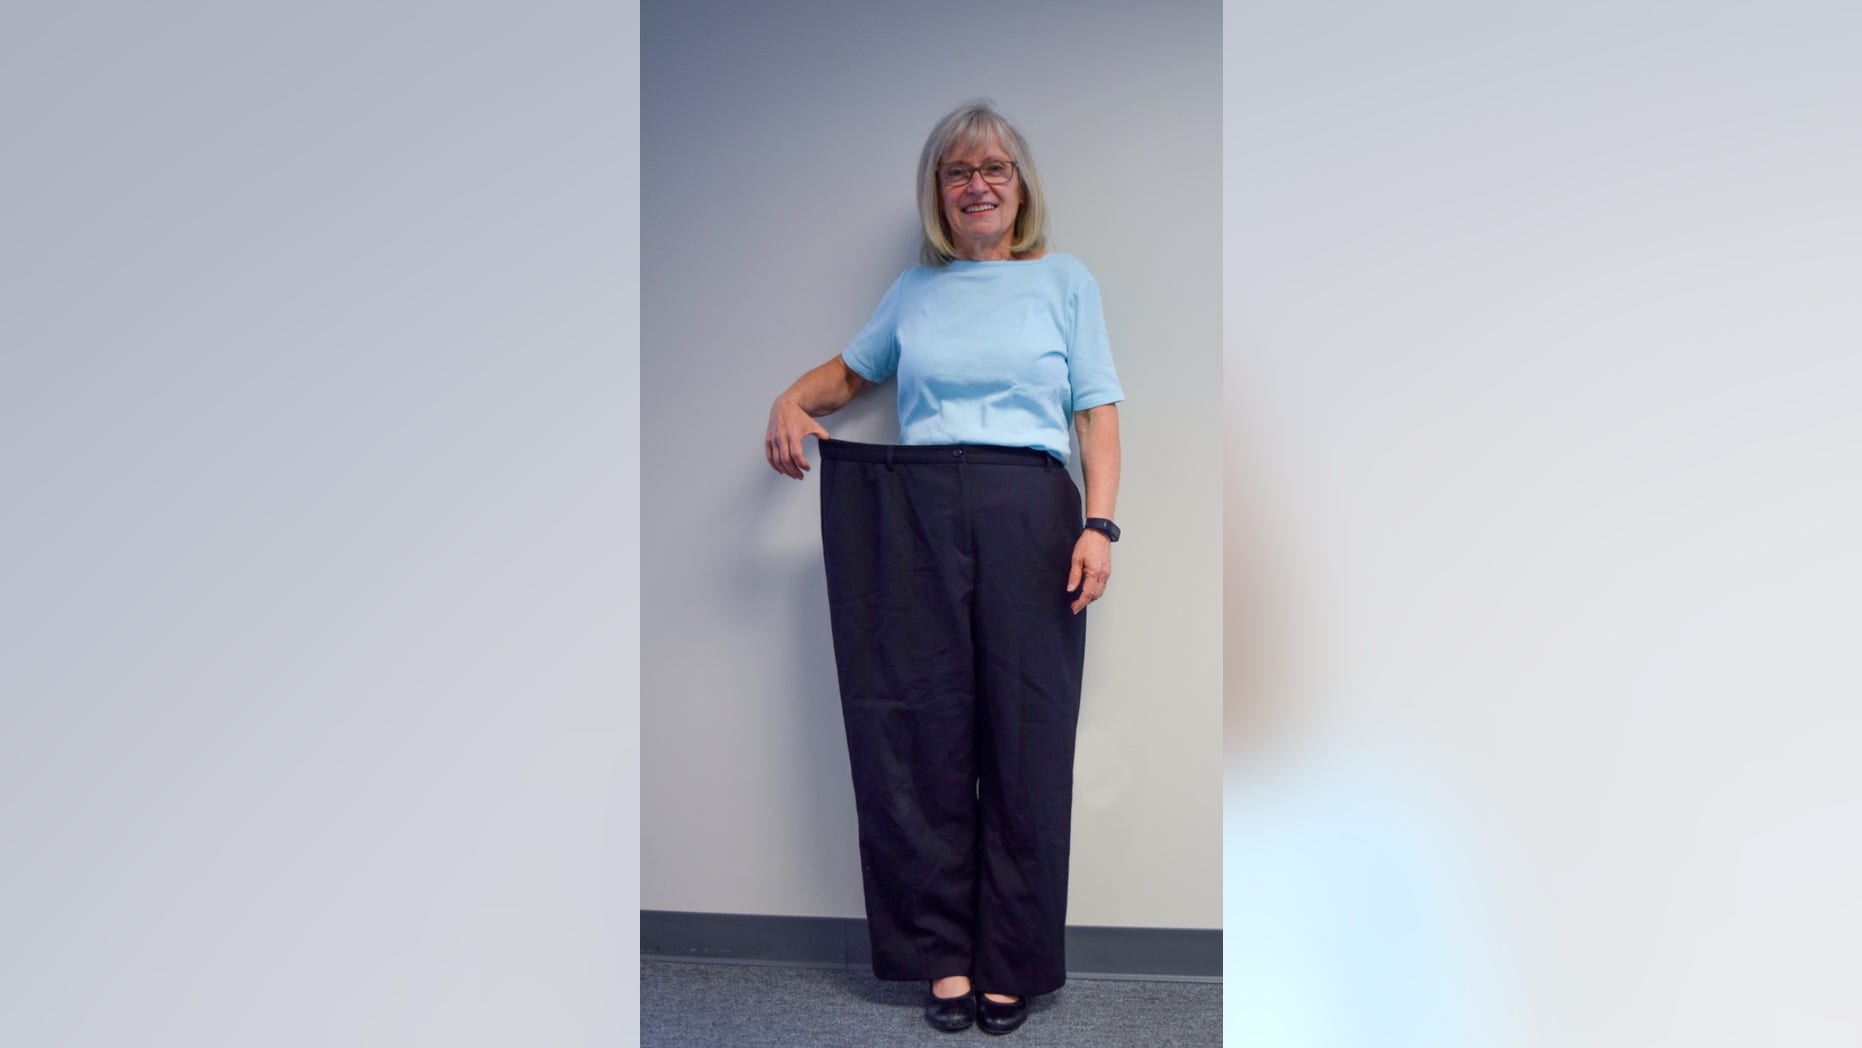 Terry Reuer, a 67-year-old Michigan woman, lost nearly 80 pounds and competed in a Tough Mudder race in June.